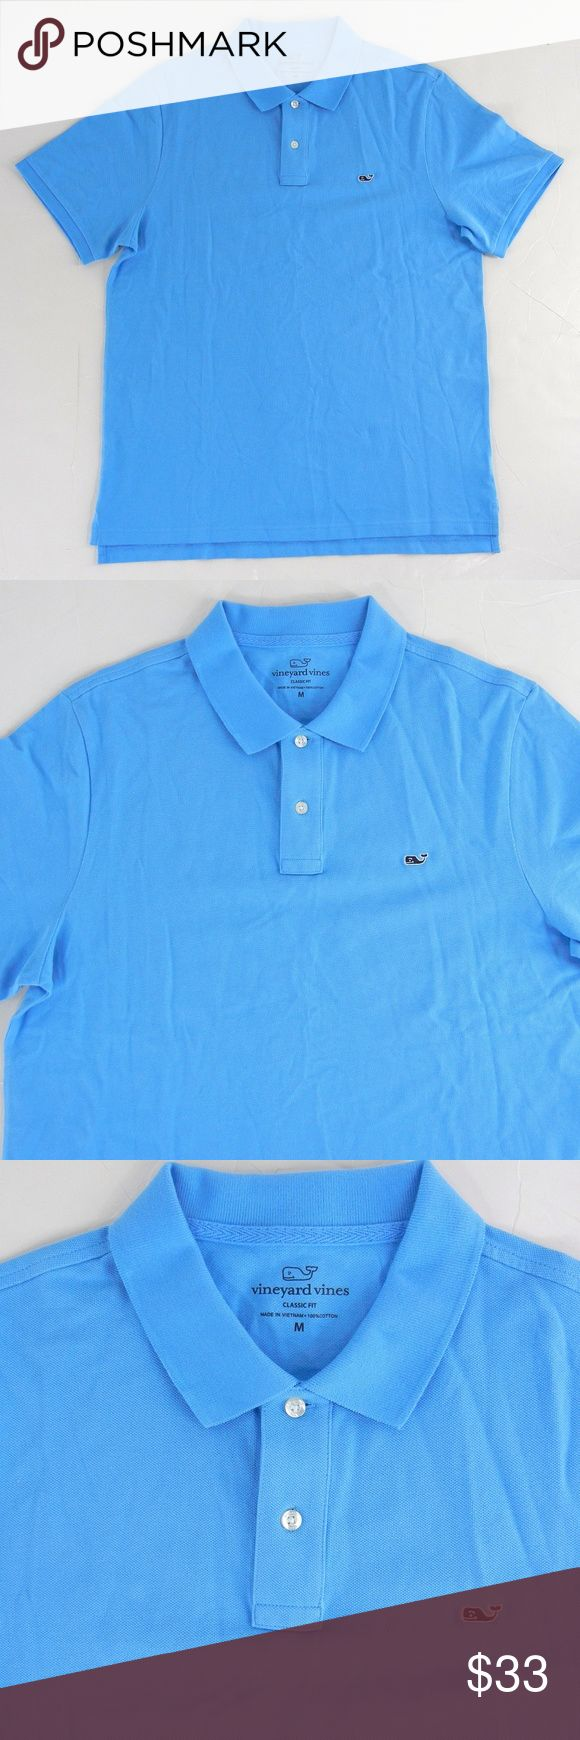 """VINEYARD VINES Men's Knit Pique Cotton Polo Shirt VINEYARD VINES men's 100% cotton stretch pique polo shirt in classic fit.  Whale logo on the chest, short sleeves.  Excellent condition with no flaws or signs of wear at all.  Size M, please check measurements carefully to determine fit.  44"""" chest, 42"""" waist, 30.5"""" long. Vineyard Vines Shirts Polos"""